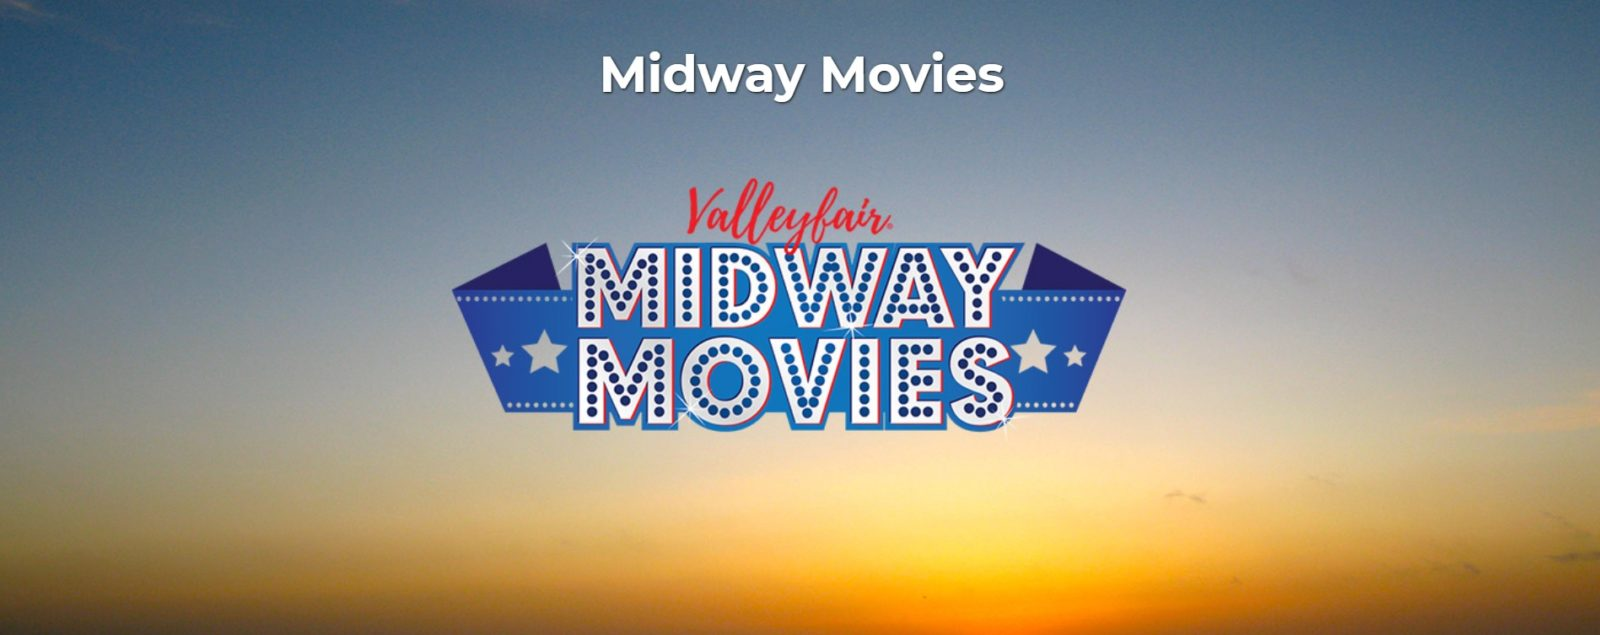 Midway Movies